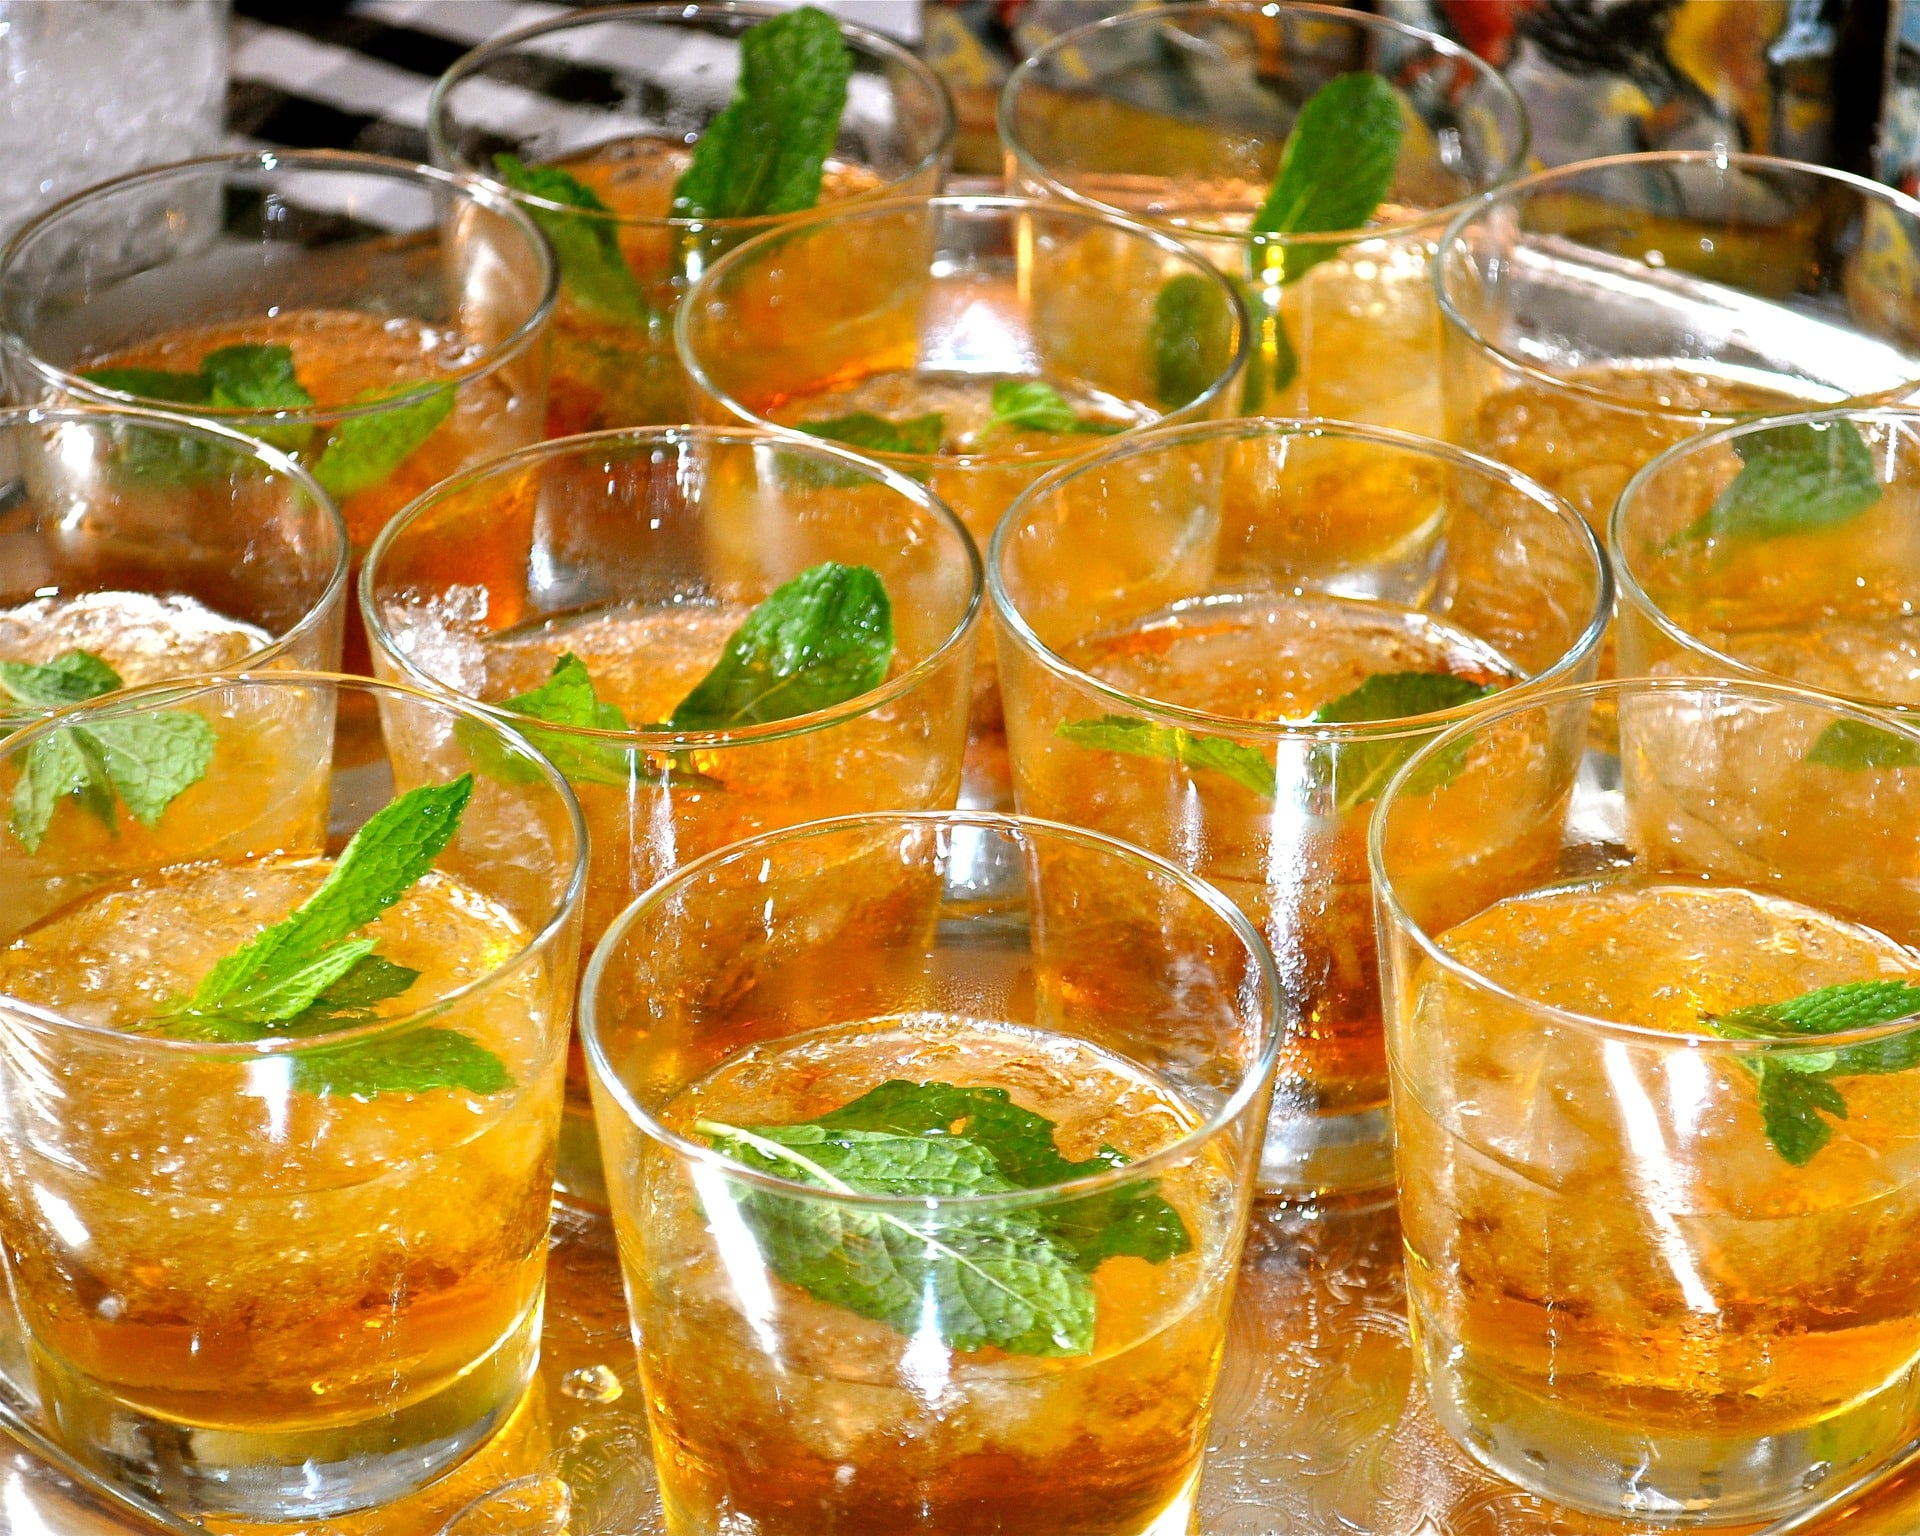 Mint juleps, mint, alcohol